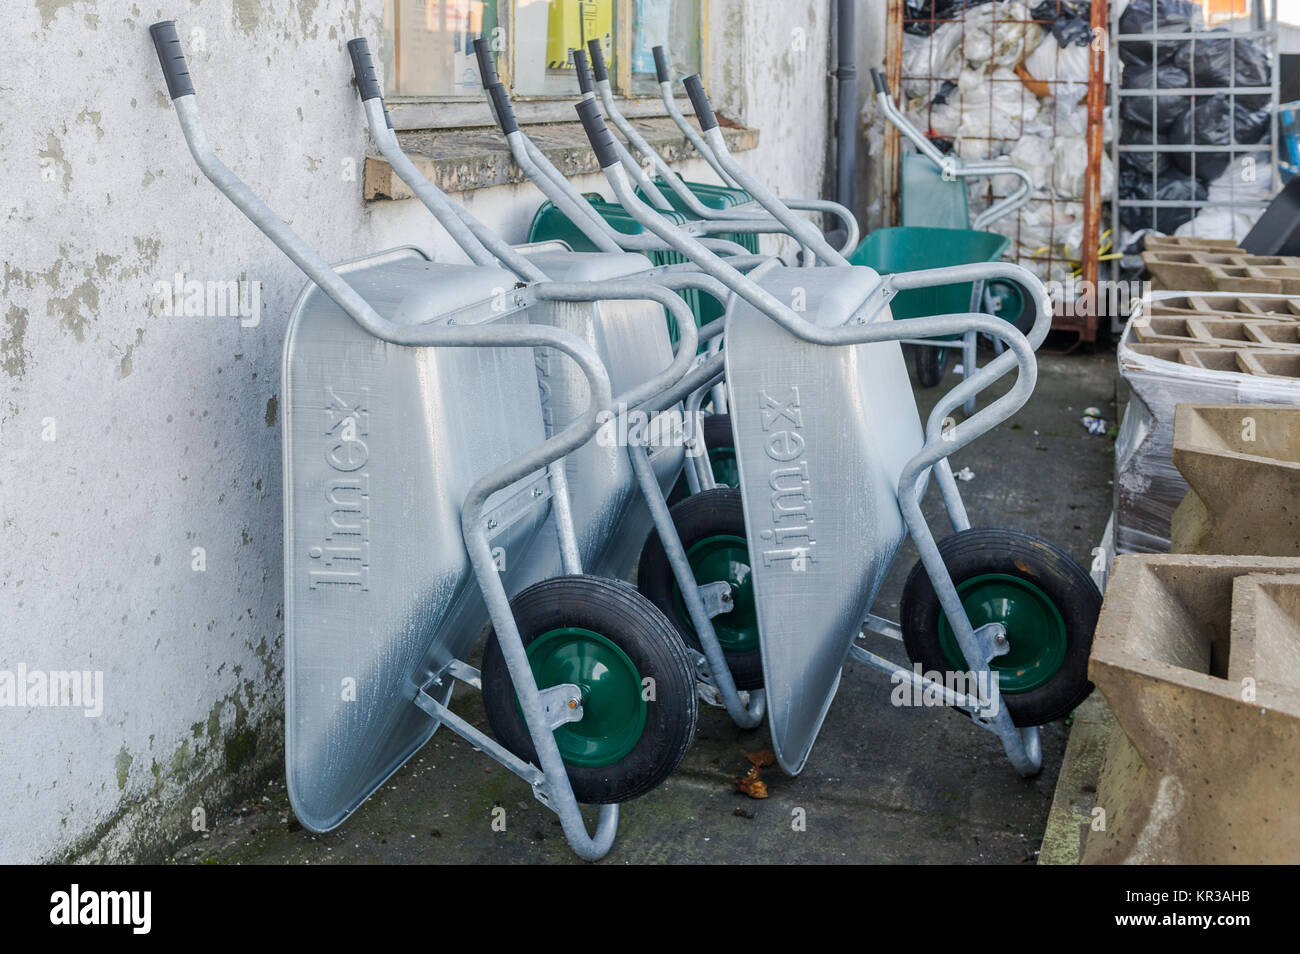 Wheelbarrows for sale against the wall of a builders merchants, Ireland. - Stock Image